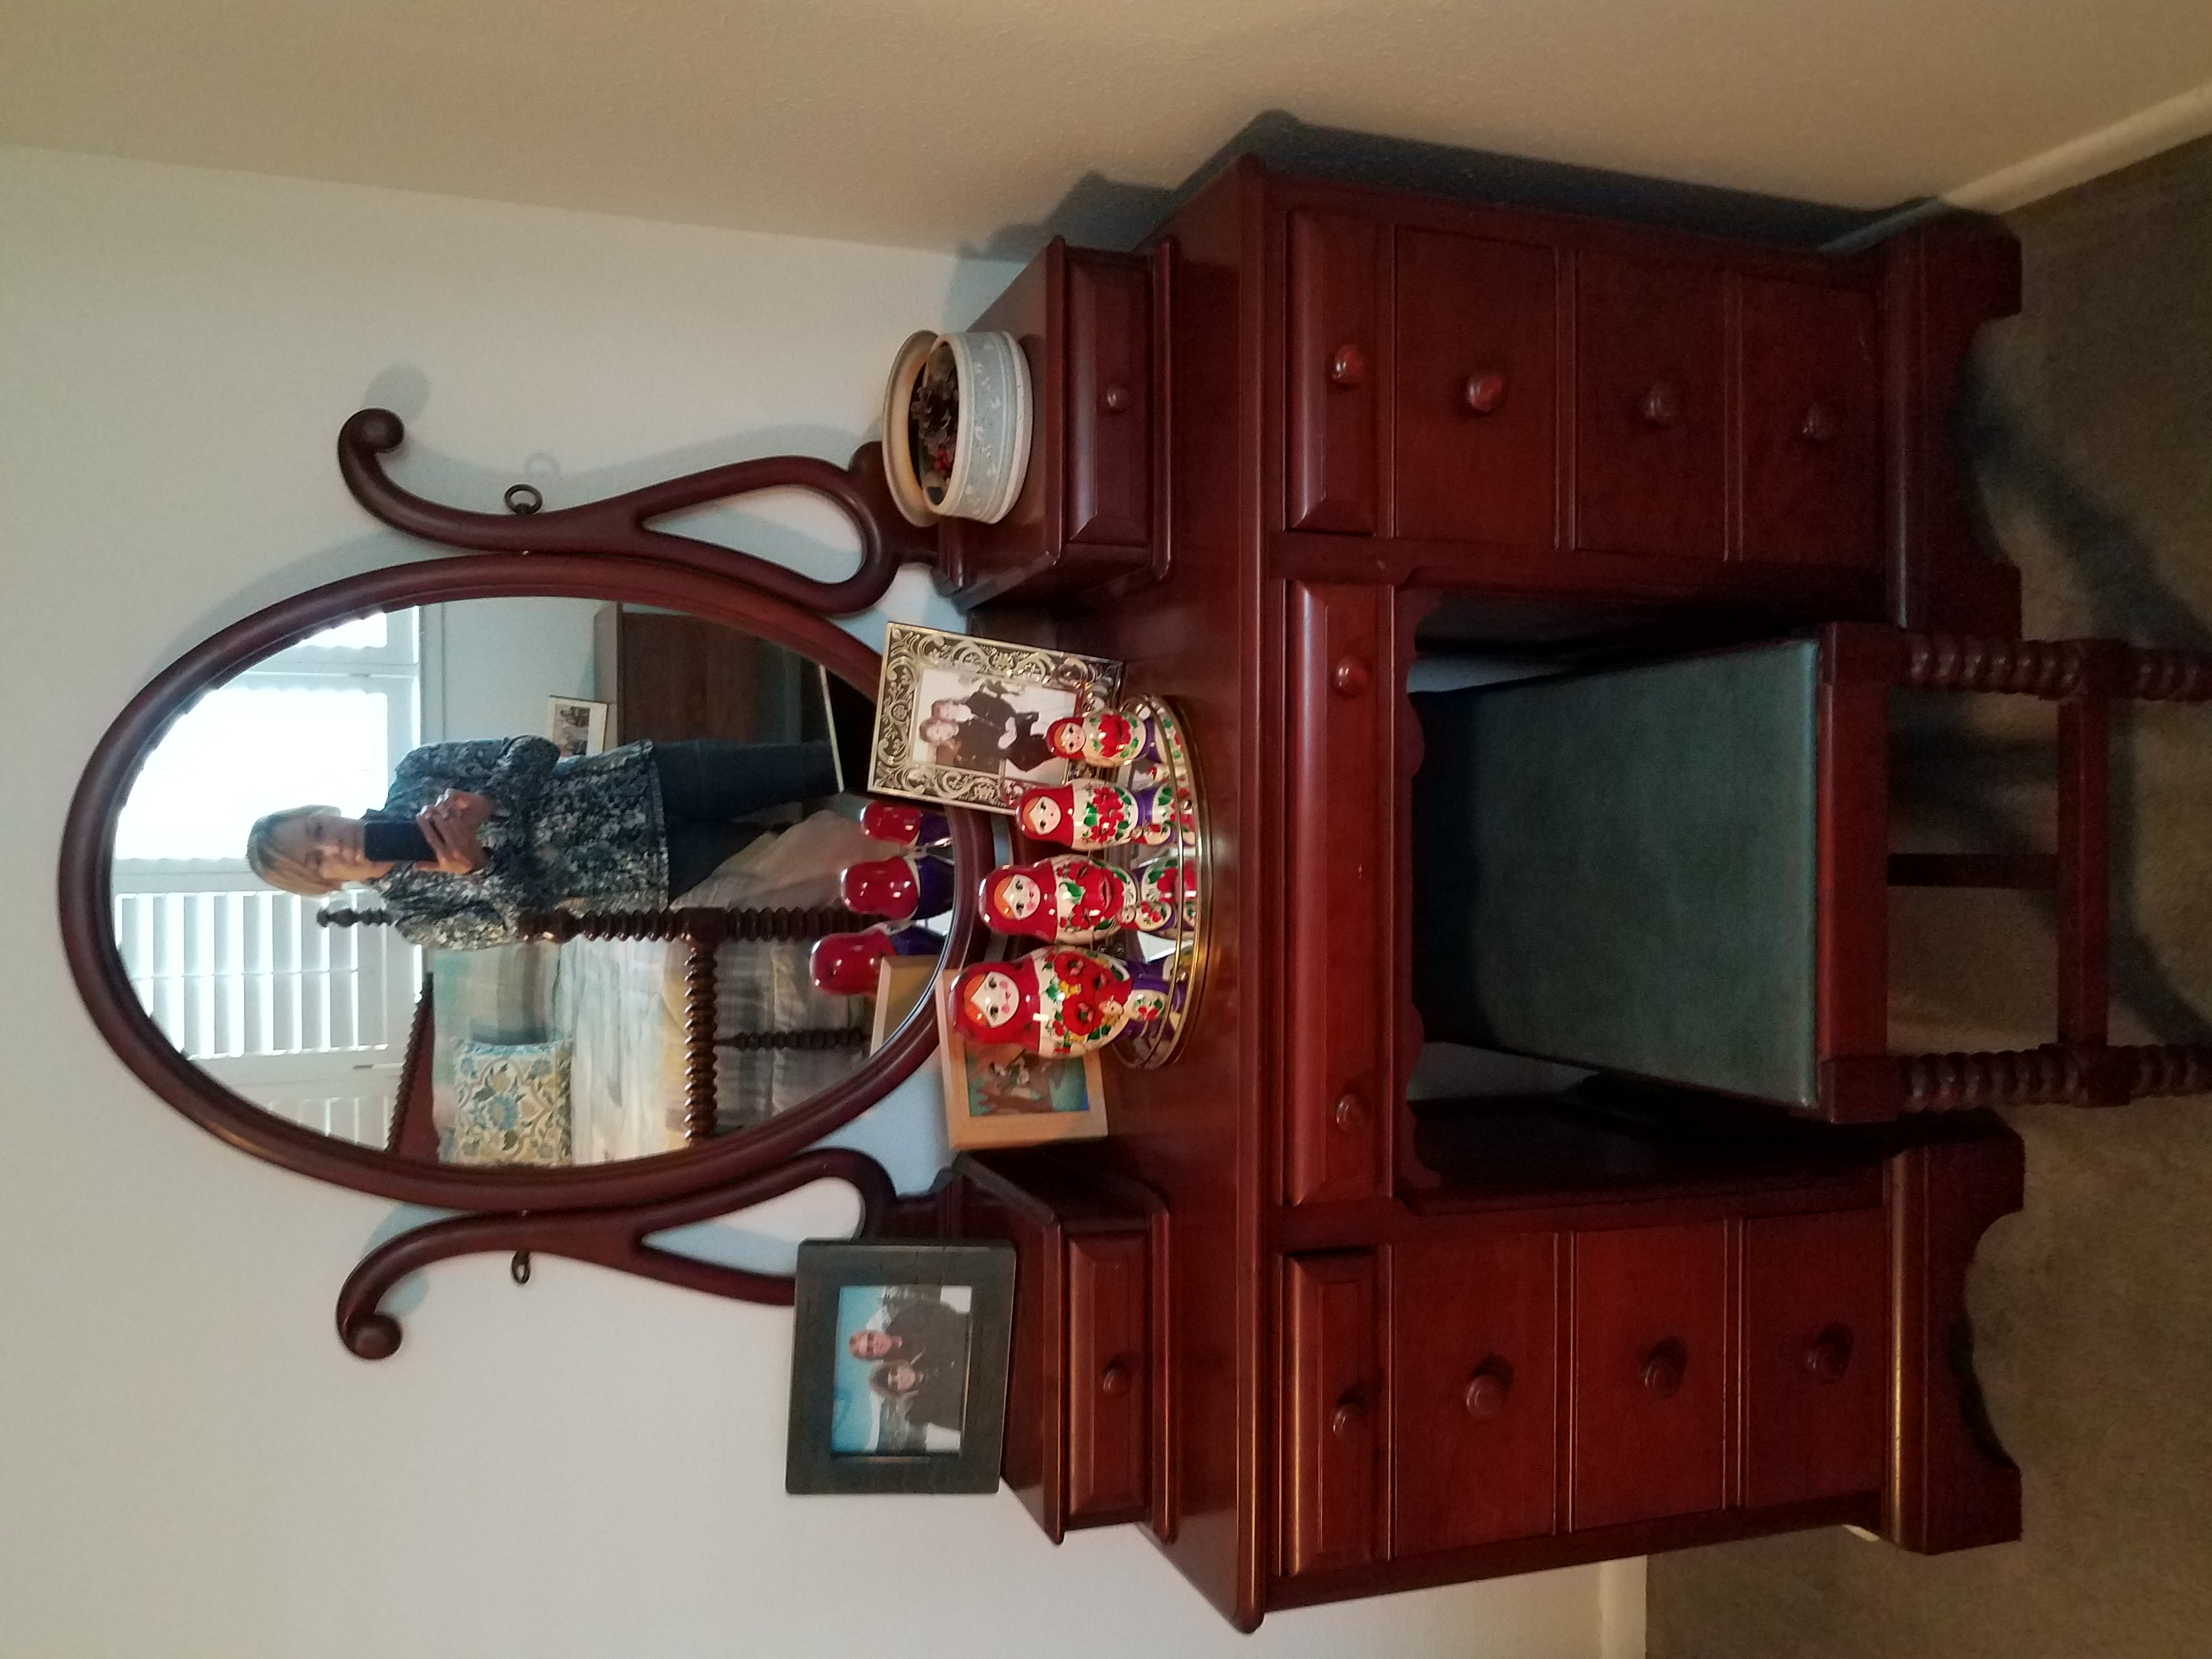 I Have A Bedroom Set Of Solid Cherry Furniture From The 1940s Poster Twin Bed Dresser Chest